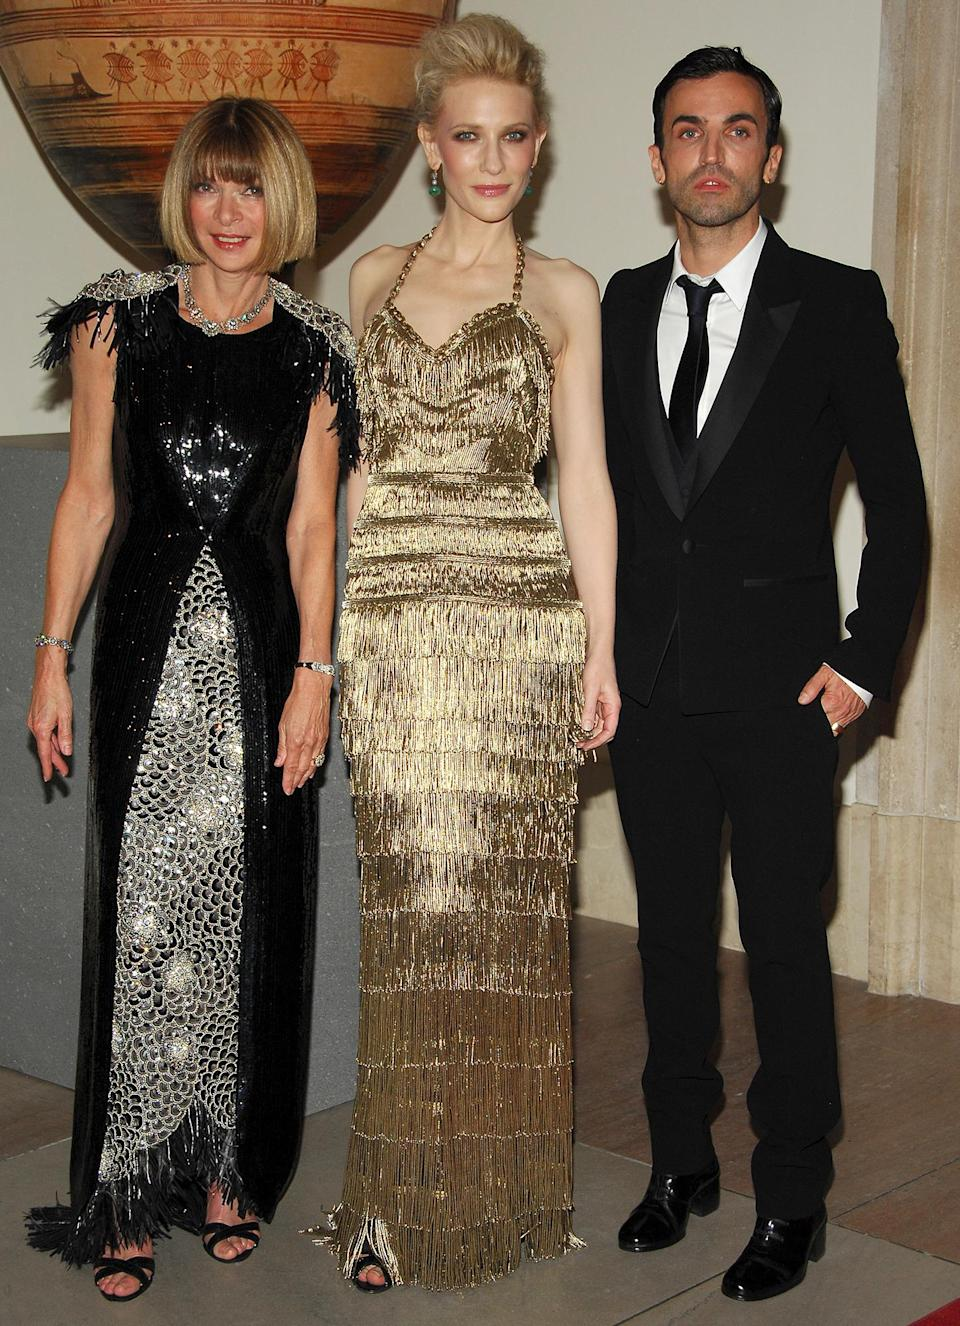 <p><strong>The theme: </strong>Poiret: King of Fashion </p> <p><strong>The co-chairs: </strong>Anna Wintour, Cate Blanchett and Nicolas Chesquière </p> <p><strong>Honorary chairs: </strong>François-Henri Pinault</p>